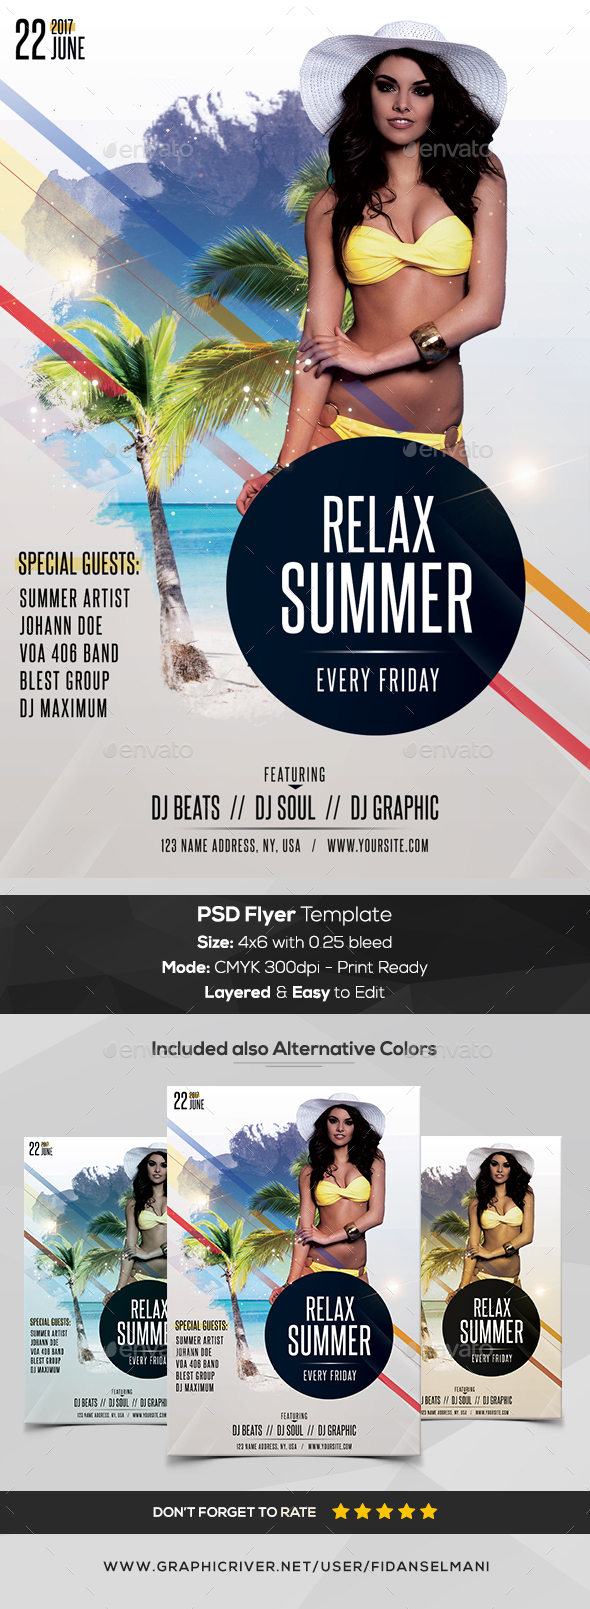 Relax Summer – PSD Flyer Template